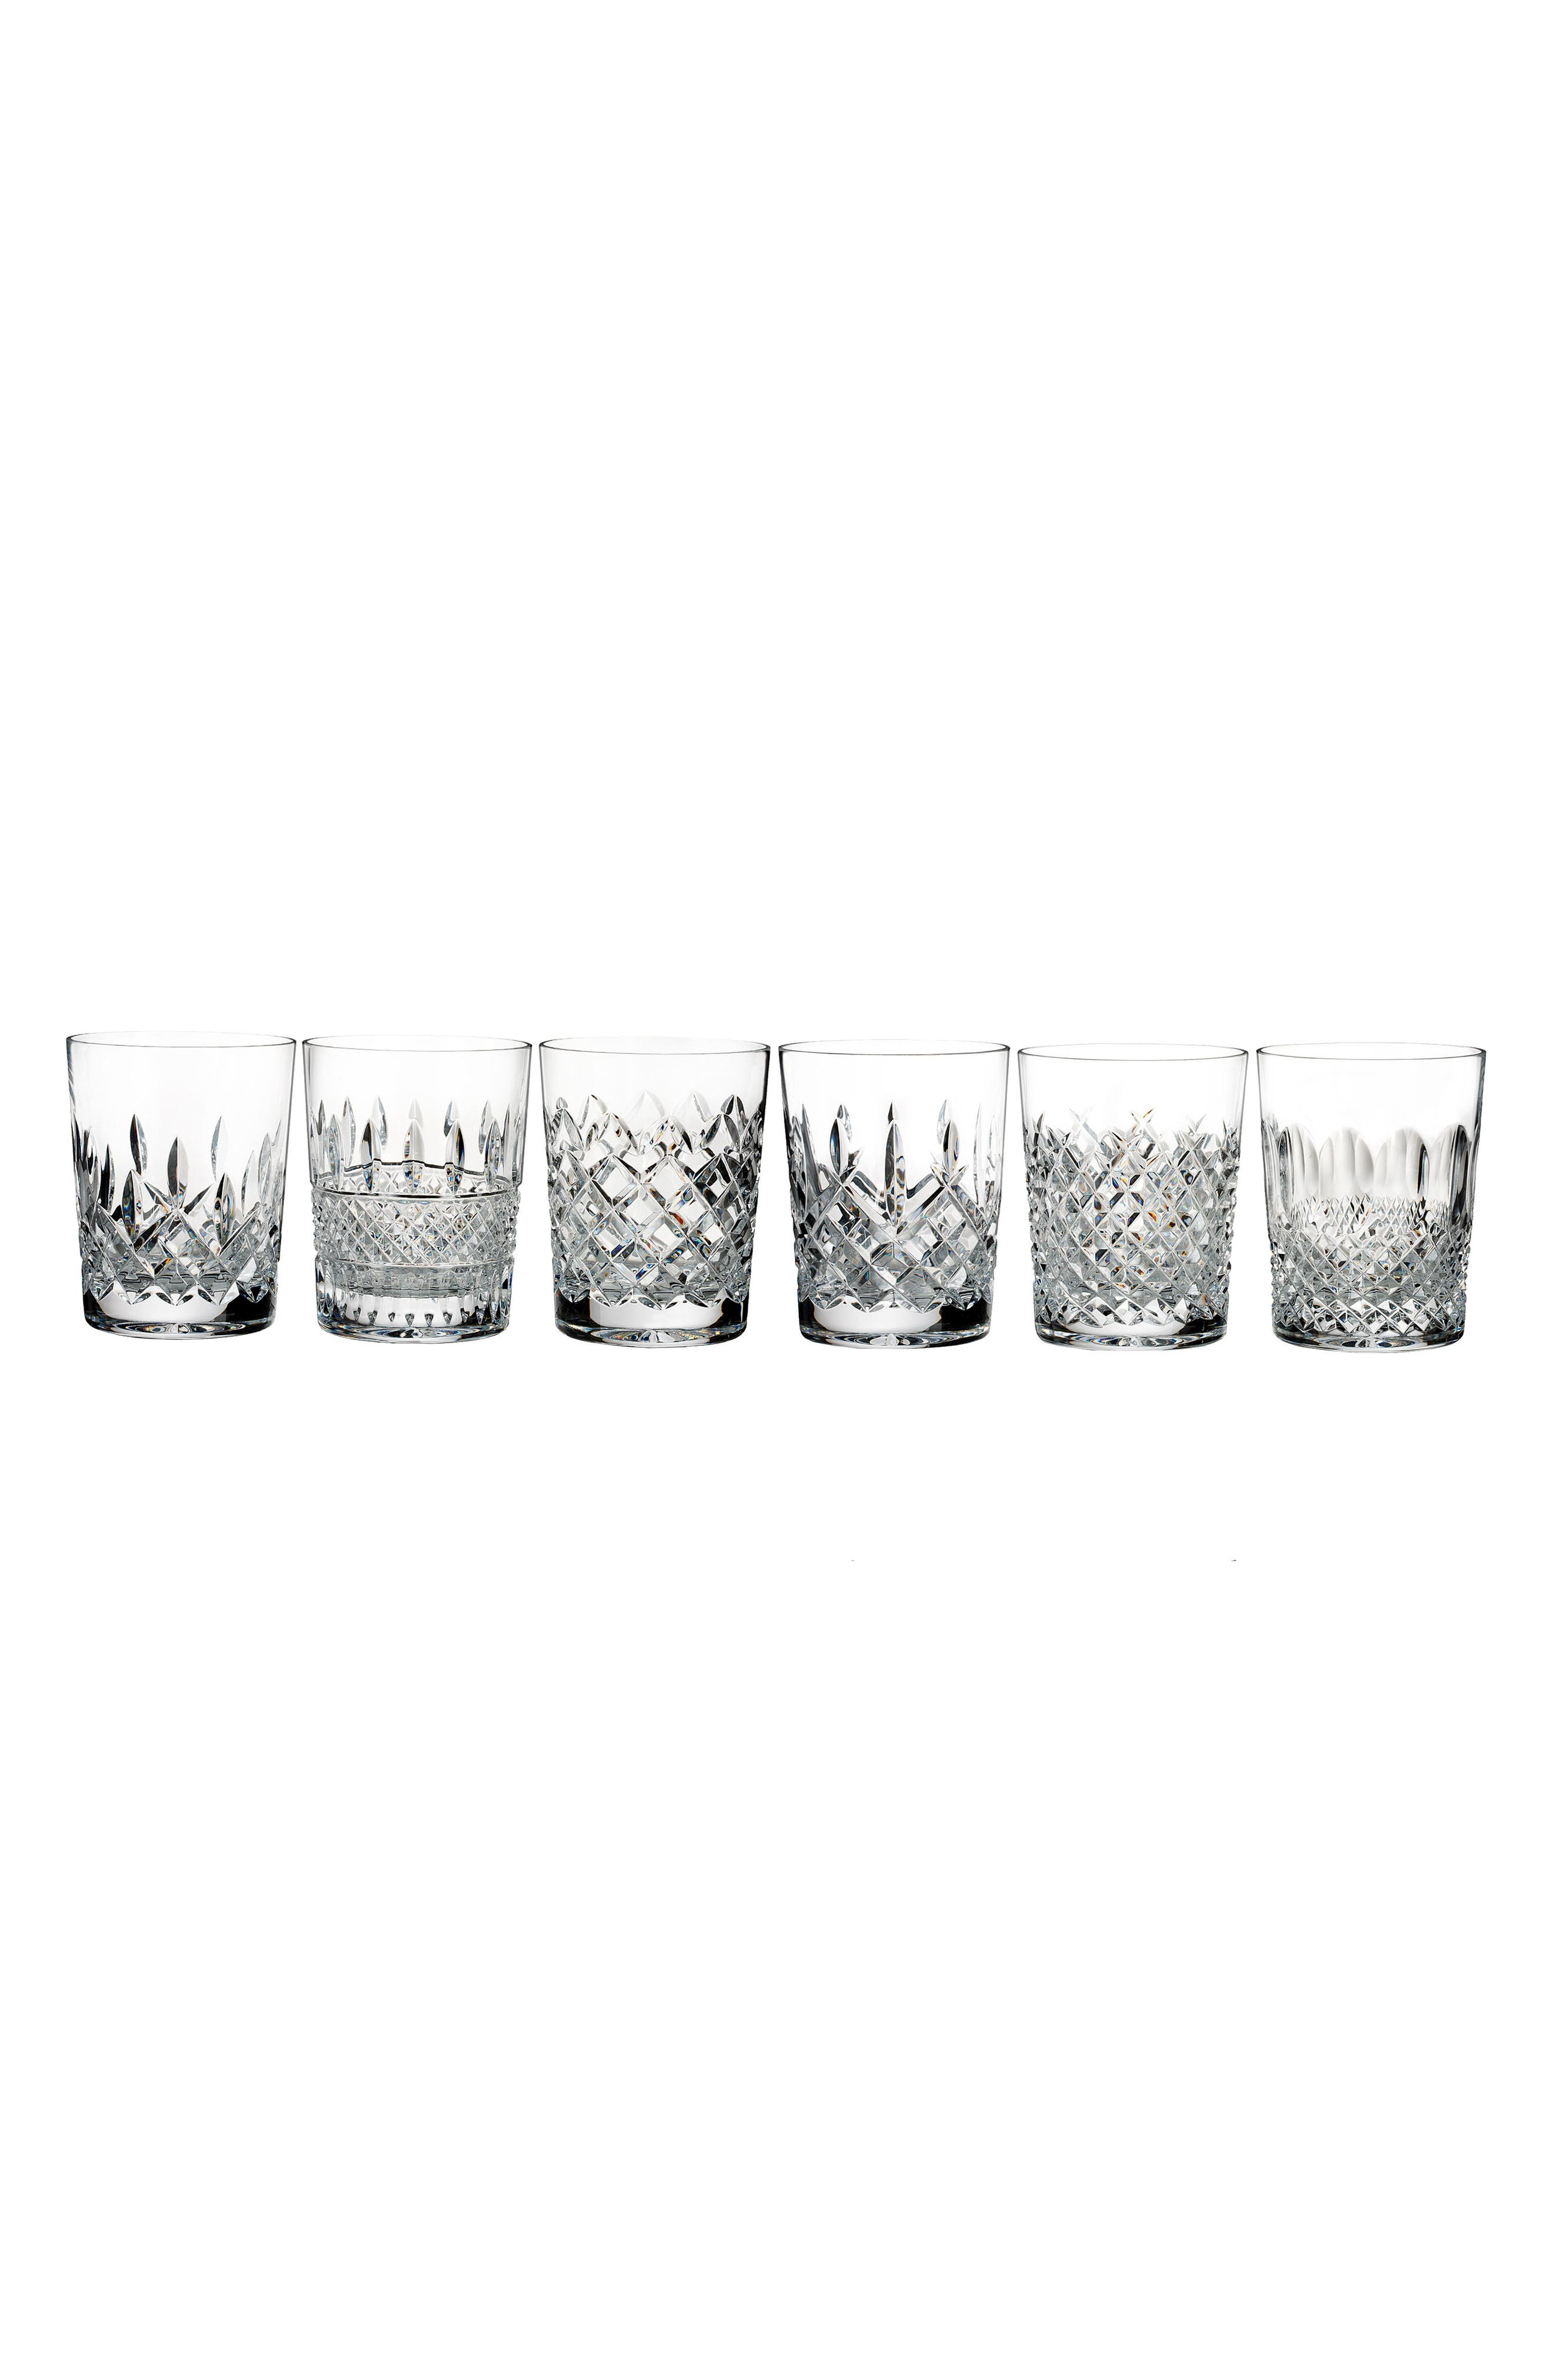 Main Image - Waterford Connoisseur Set of 6 Lead Crystal Double Old Fashioned Glasses